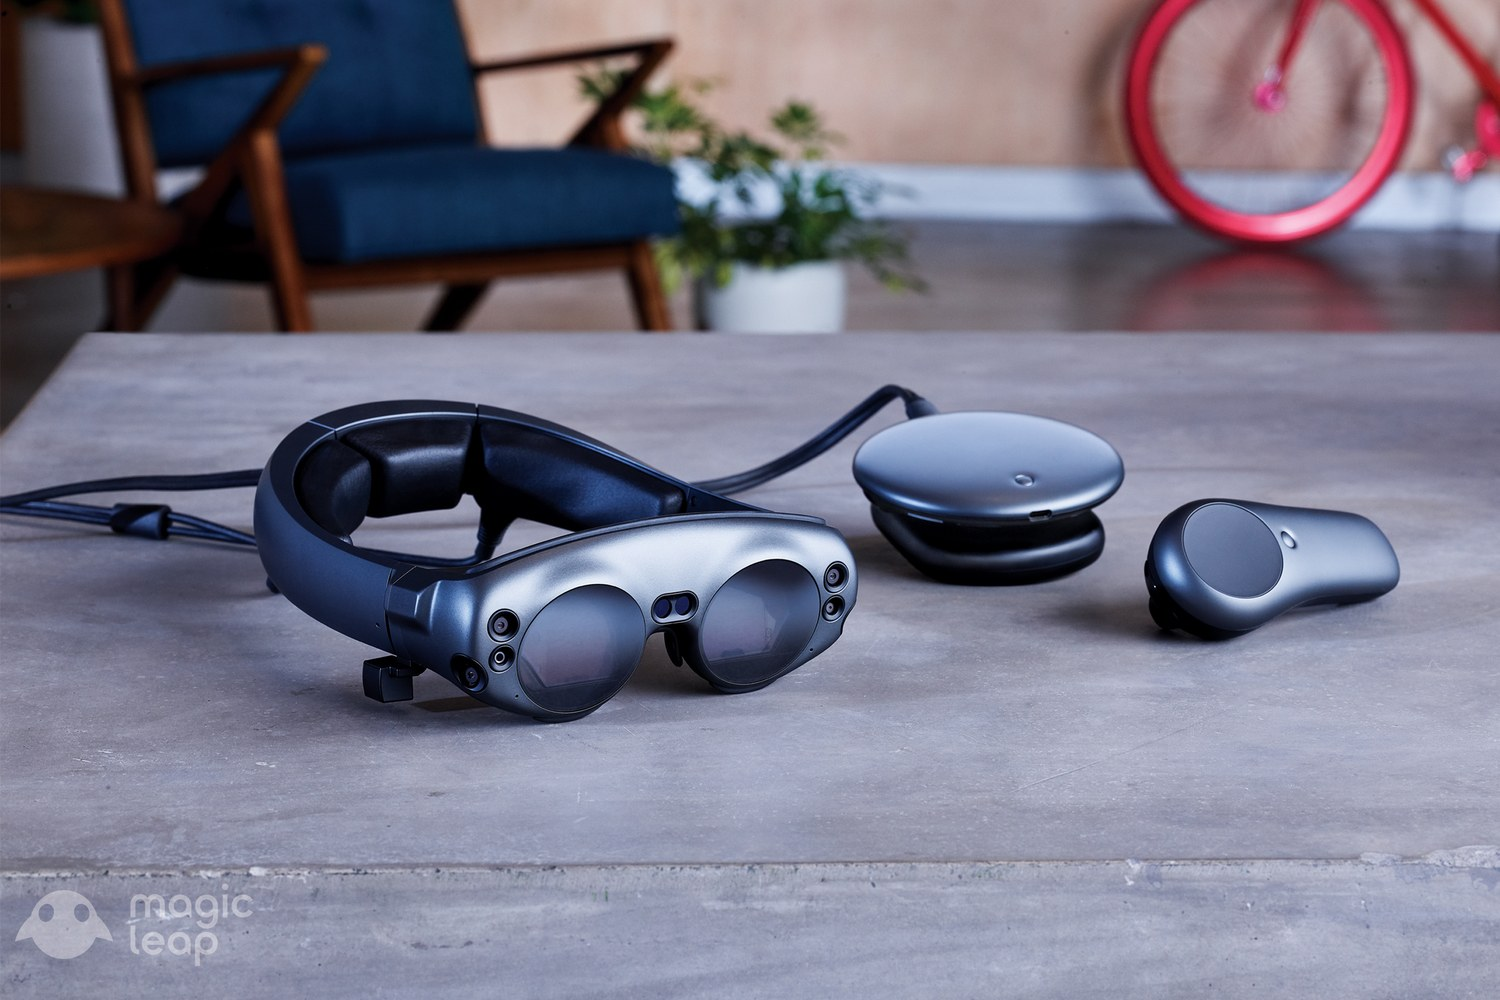 Oculus Rift creator Palmer Luckey reviews the Magic Leap One